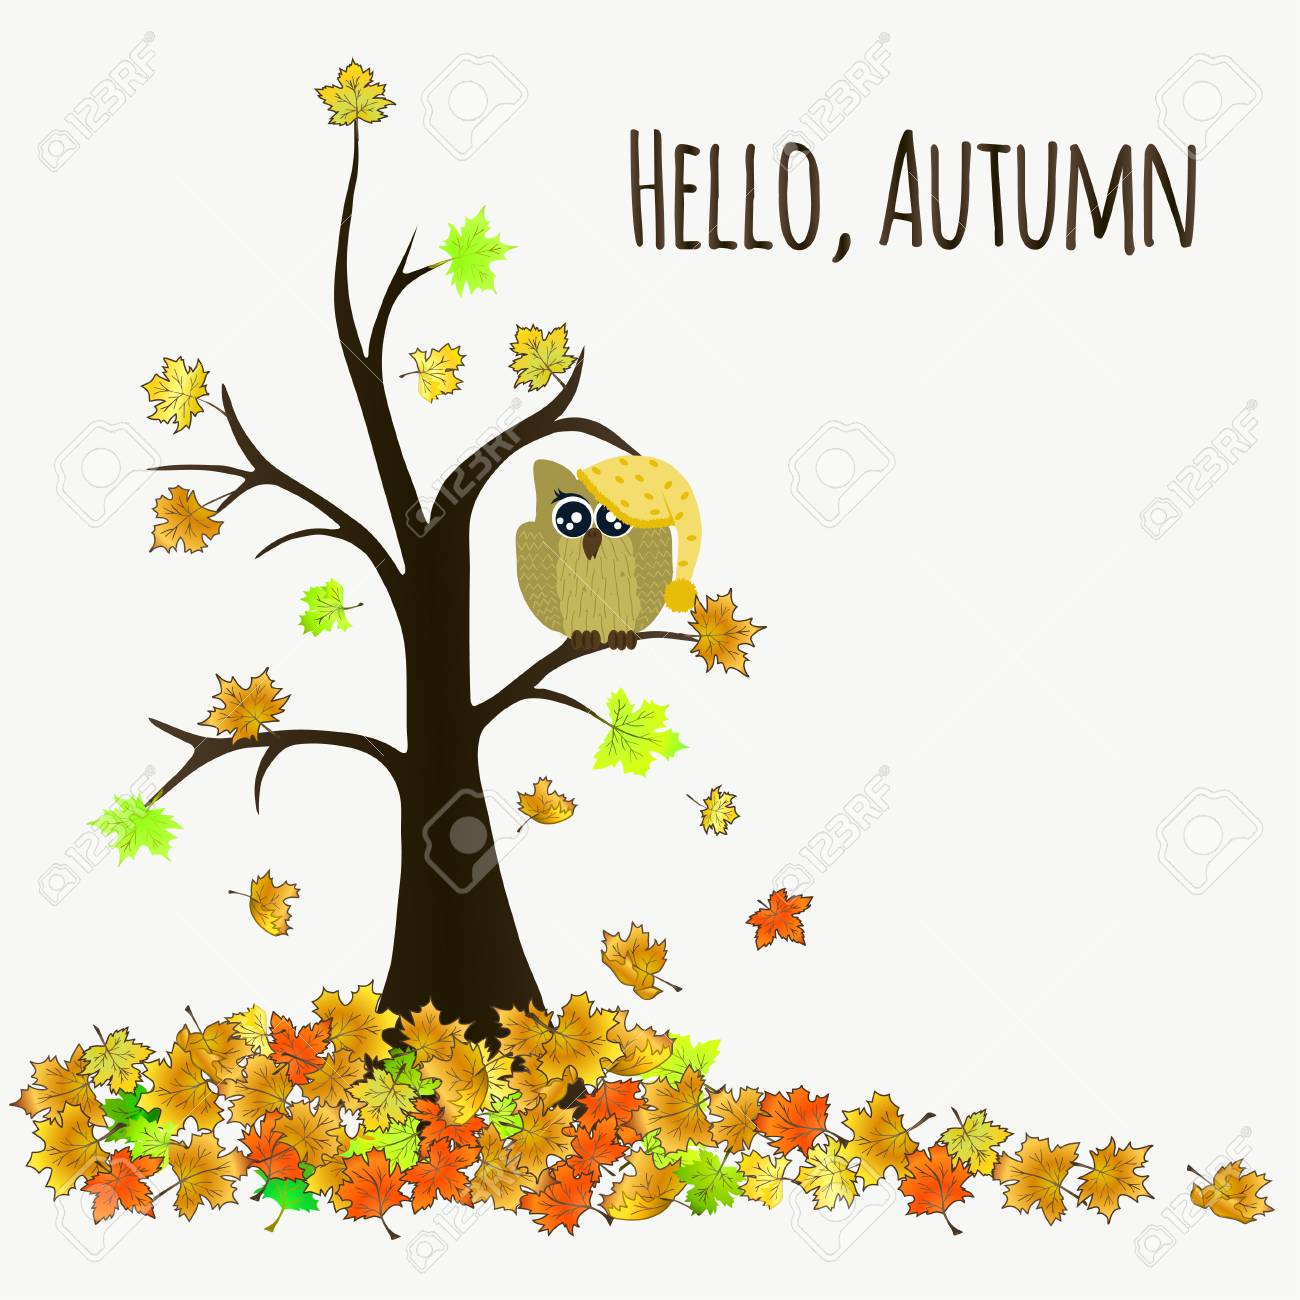 Tree With Cartoon Owl And Falling Maple Leaves For Greeting Royalty Free Cliparts Vectors And Stock Illustration Image 112319810 Cartoon tree transparent images (6,688). tree with cartoon owl and falling maple leaves for greeting